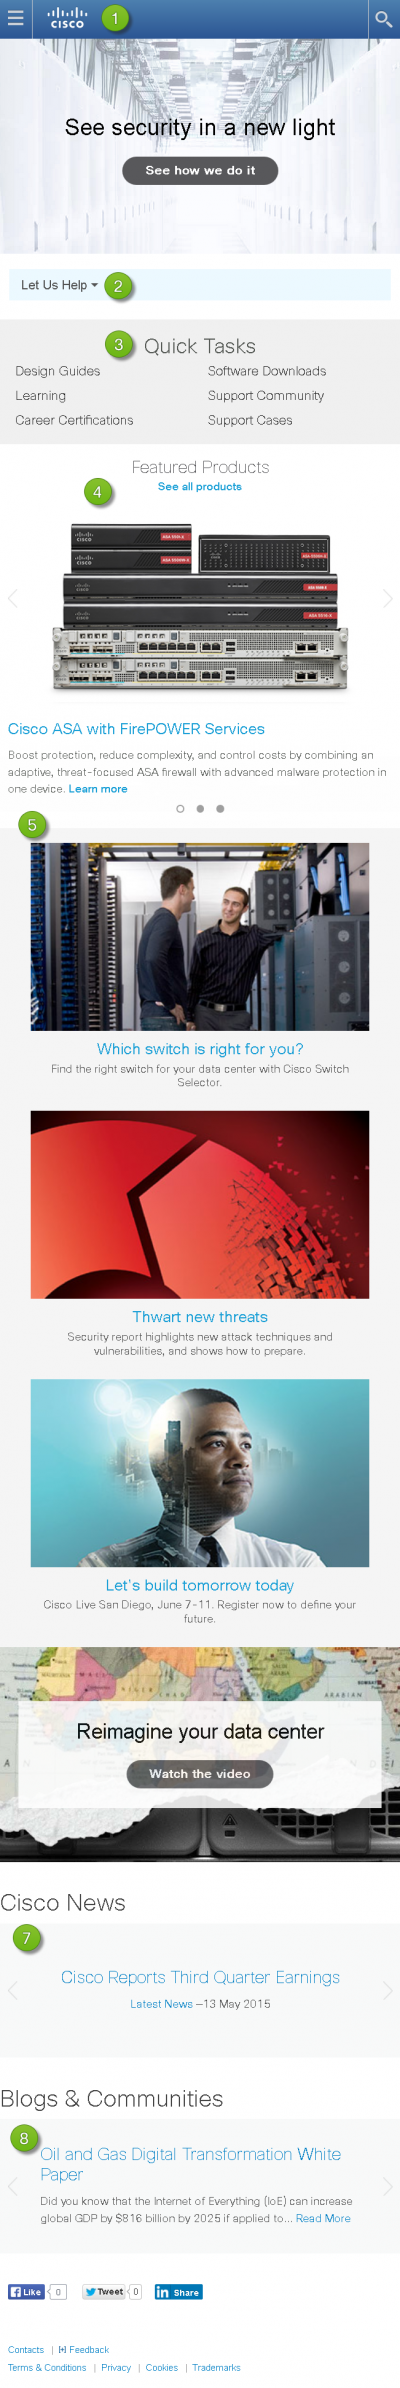 Home Page Mobile May 2015